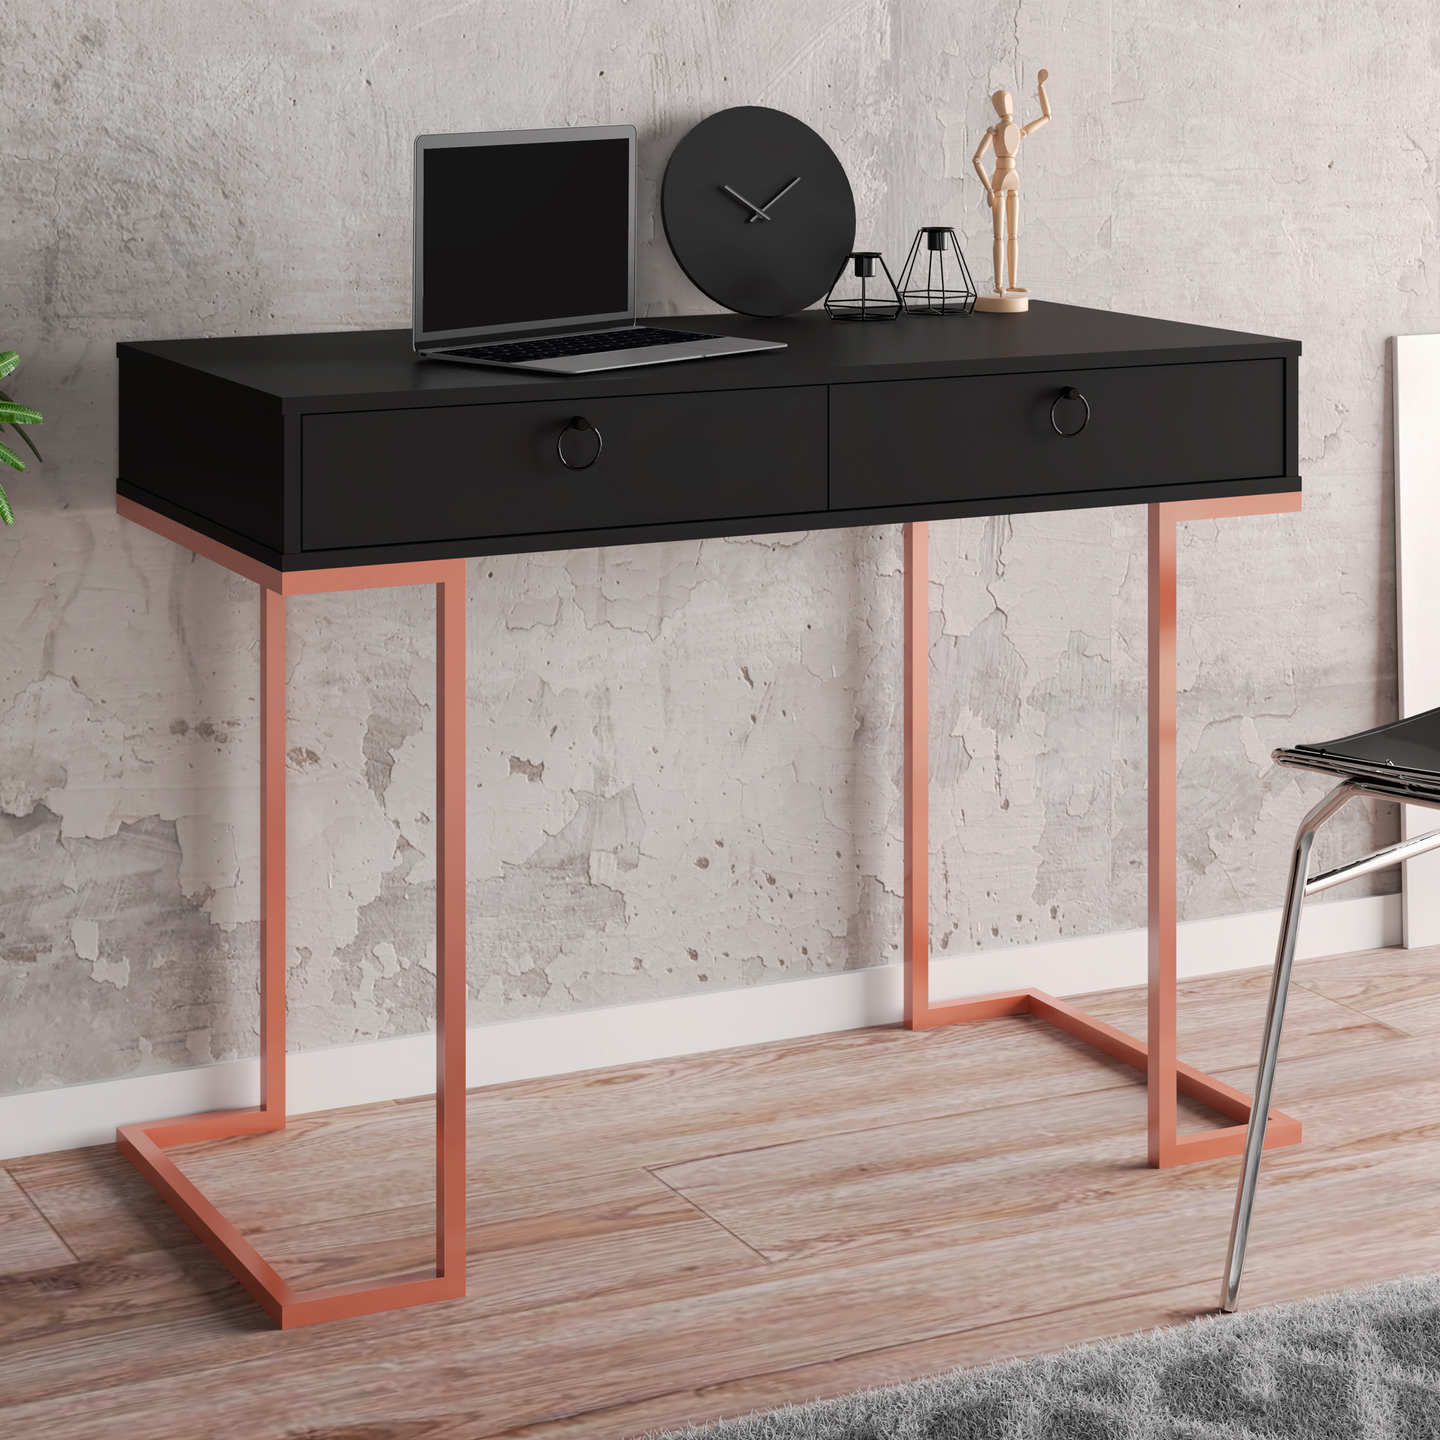 Boahaus Surabaya Desk, Black, 2 Drawers, Metal Frame